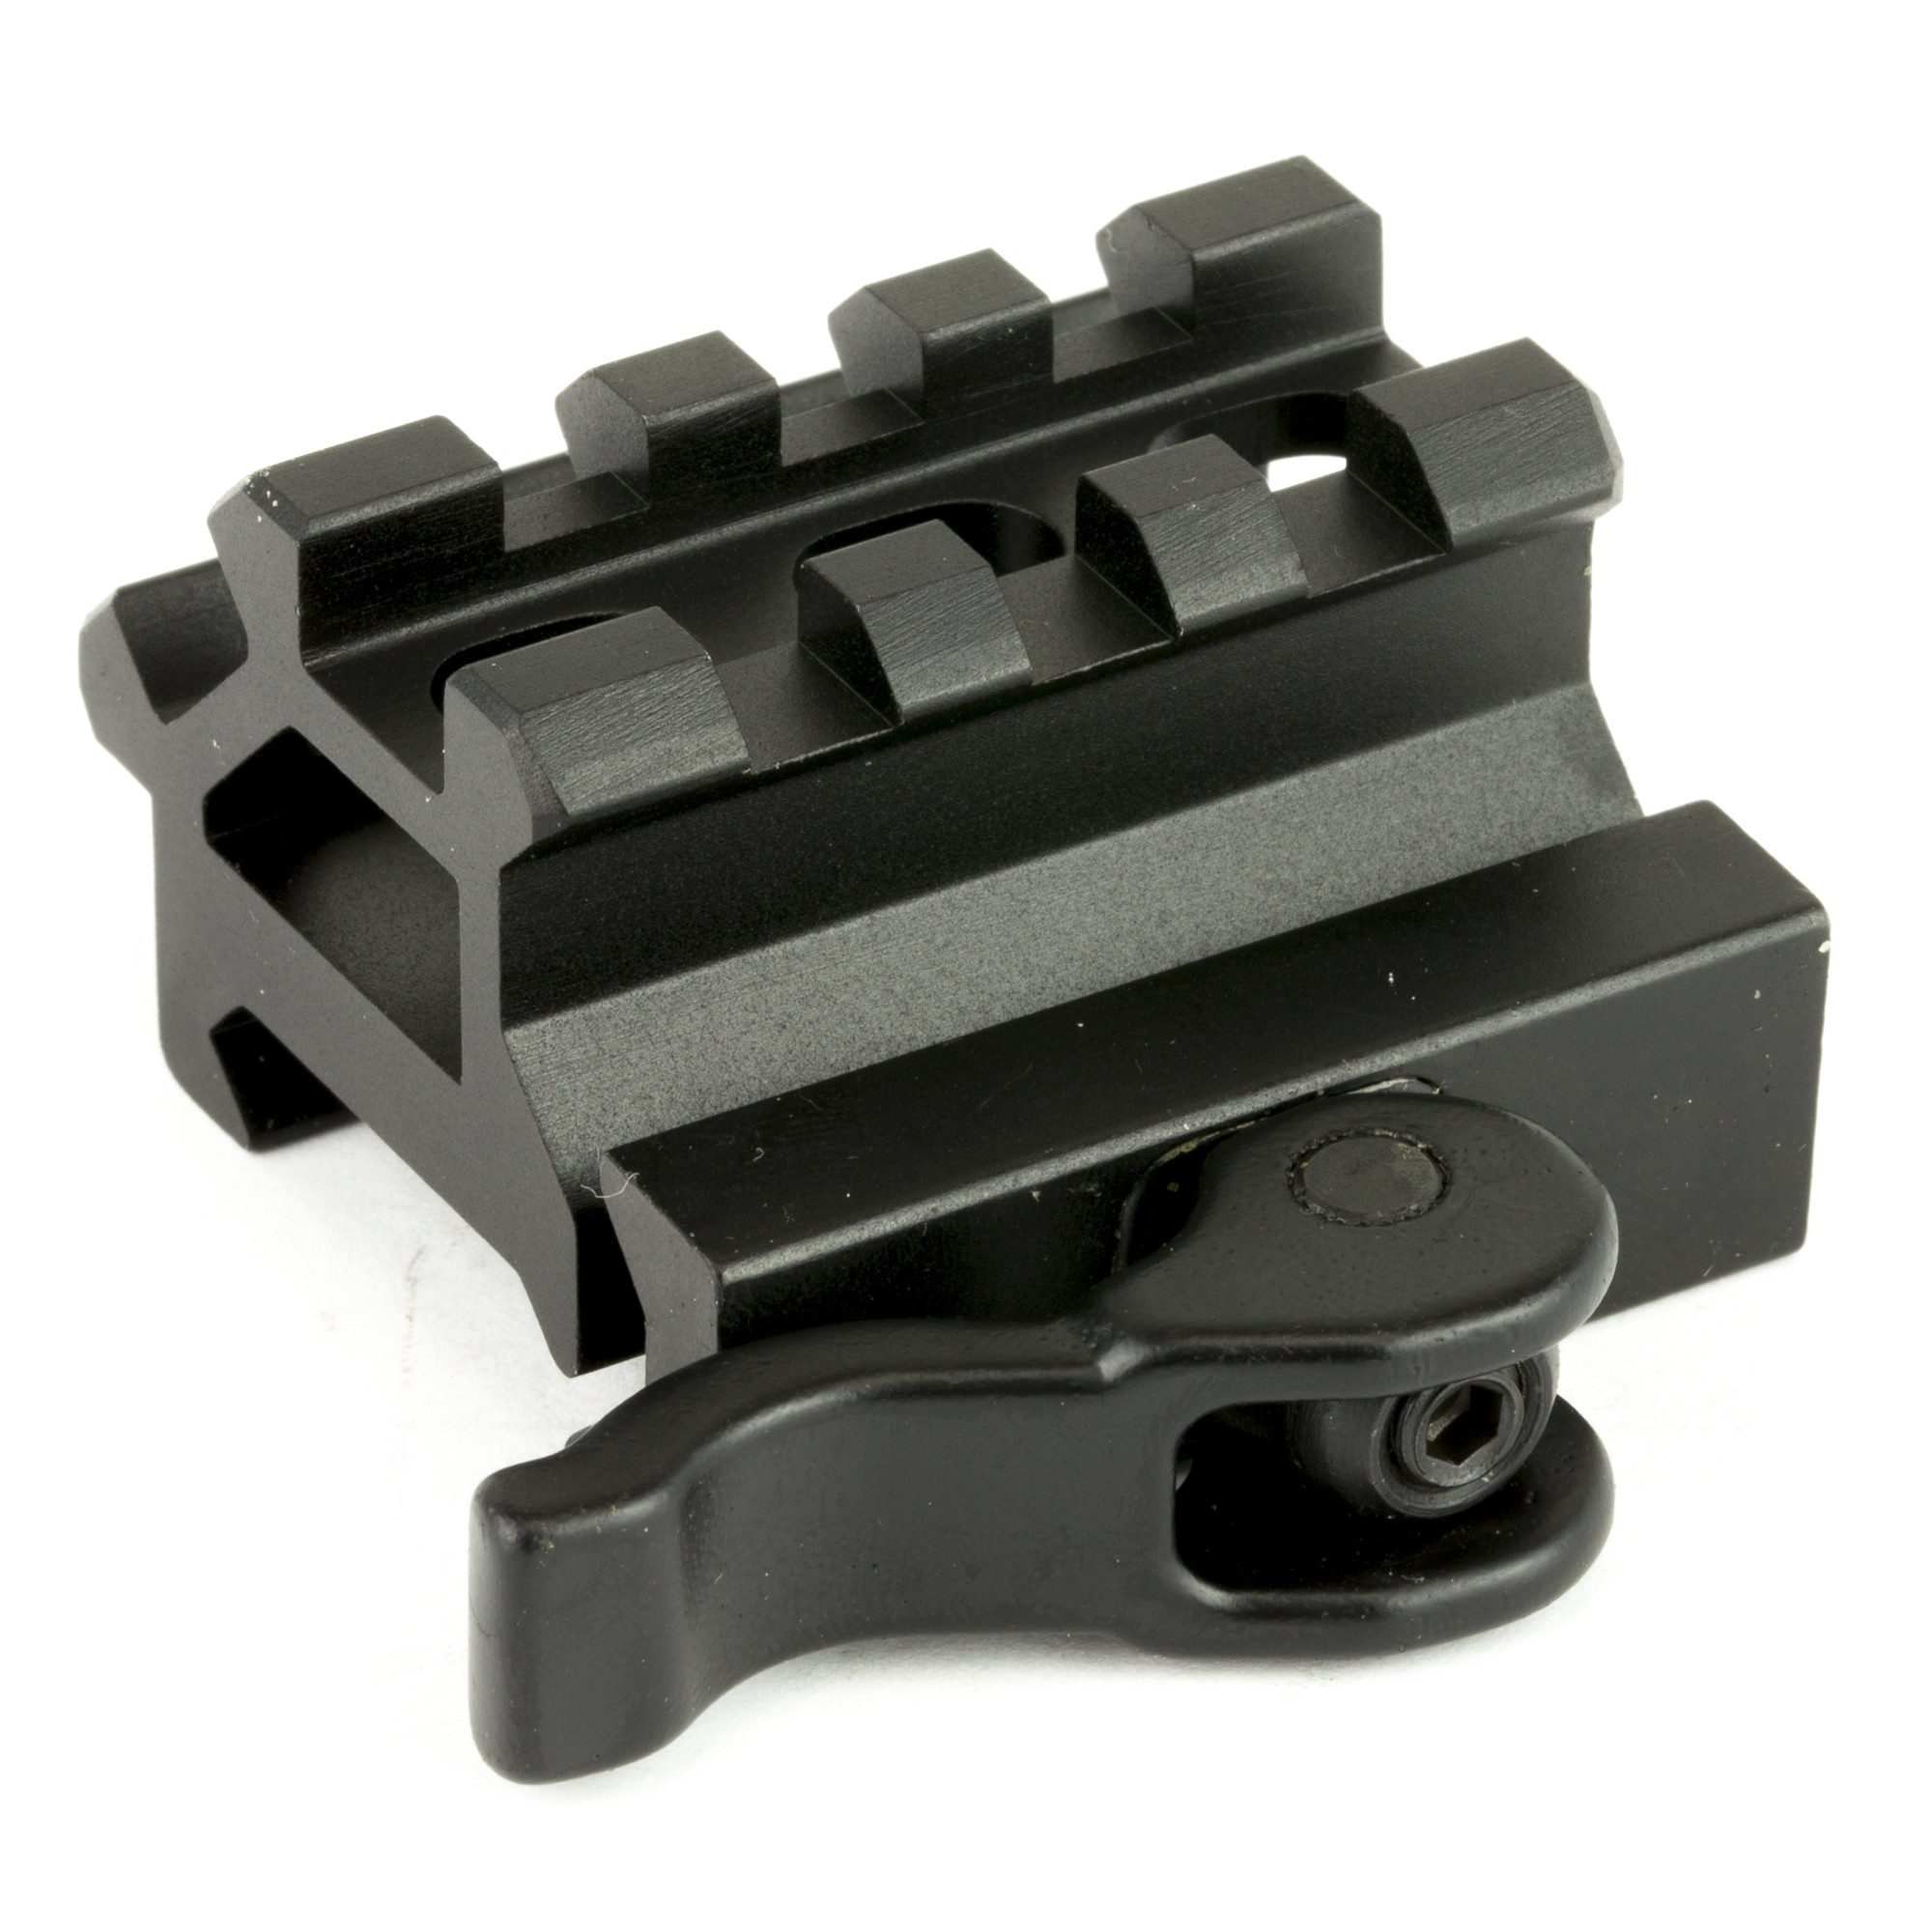 UTG Double Picatinny Rail with 3 Slot Angle Mount W/QD LOCK